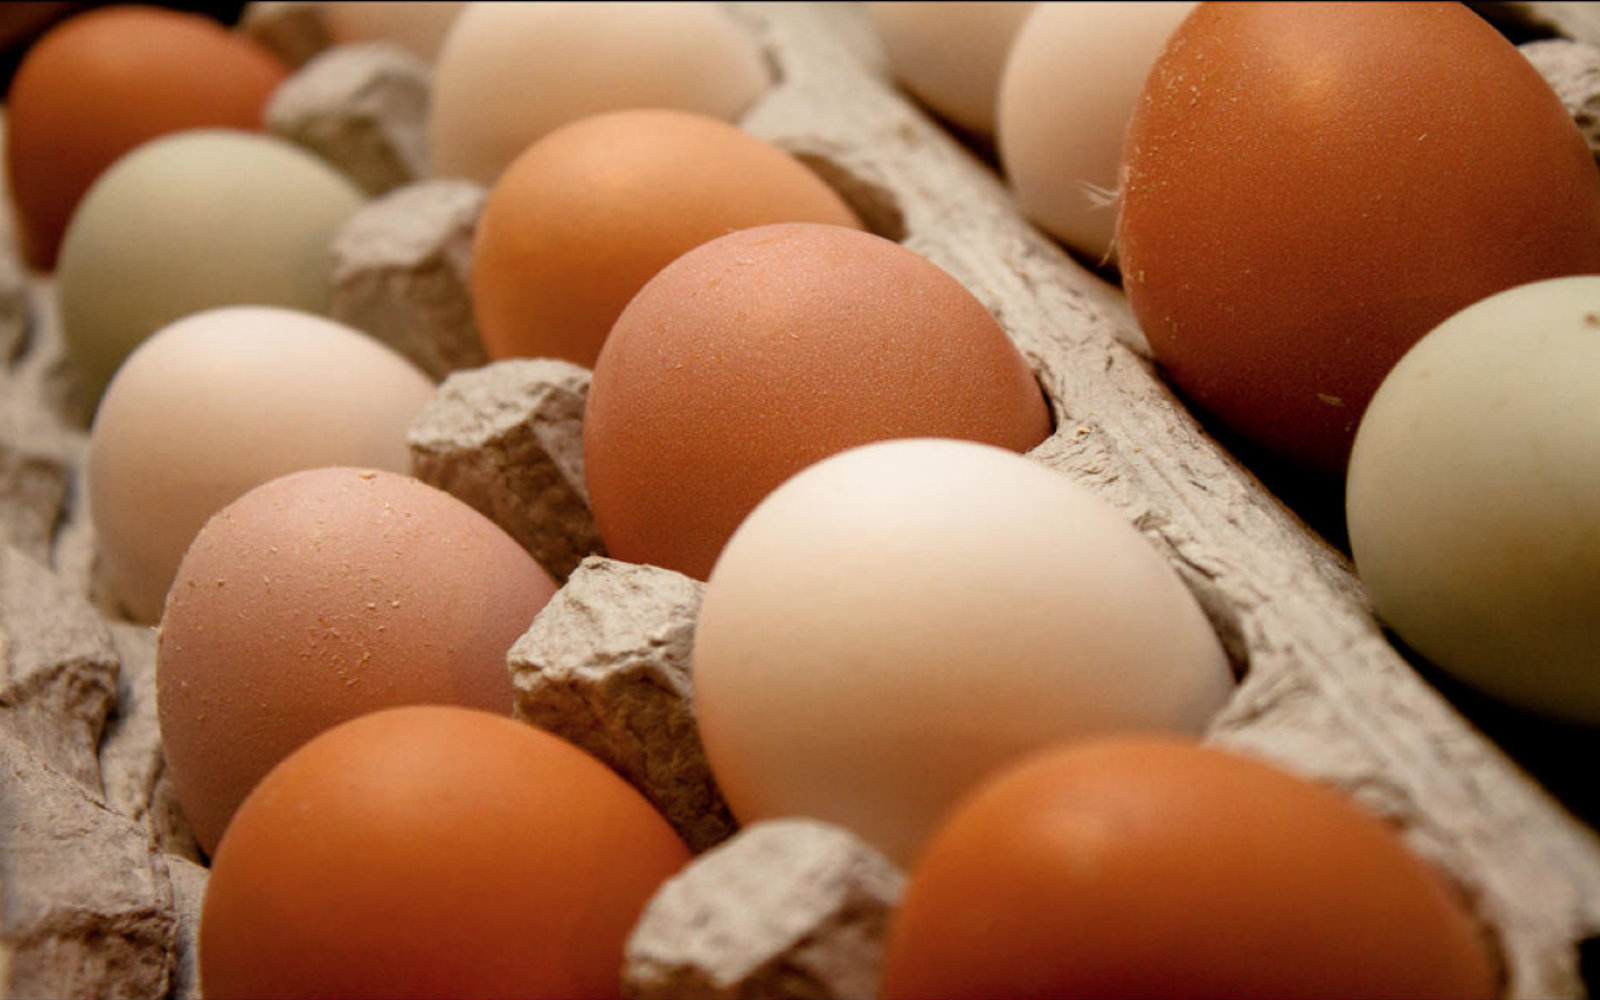 10 Shocking Facts About Egg Production